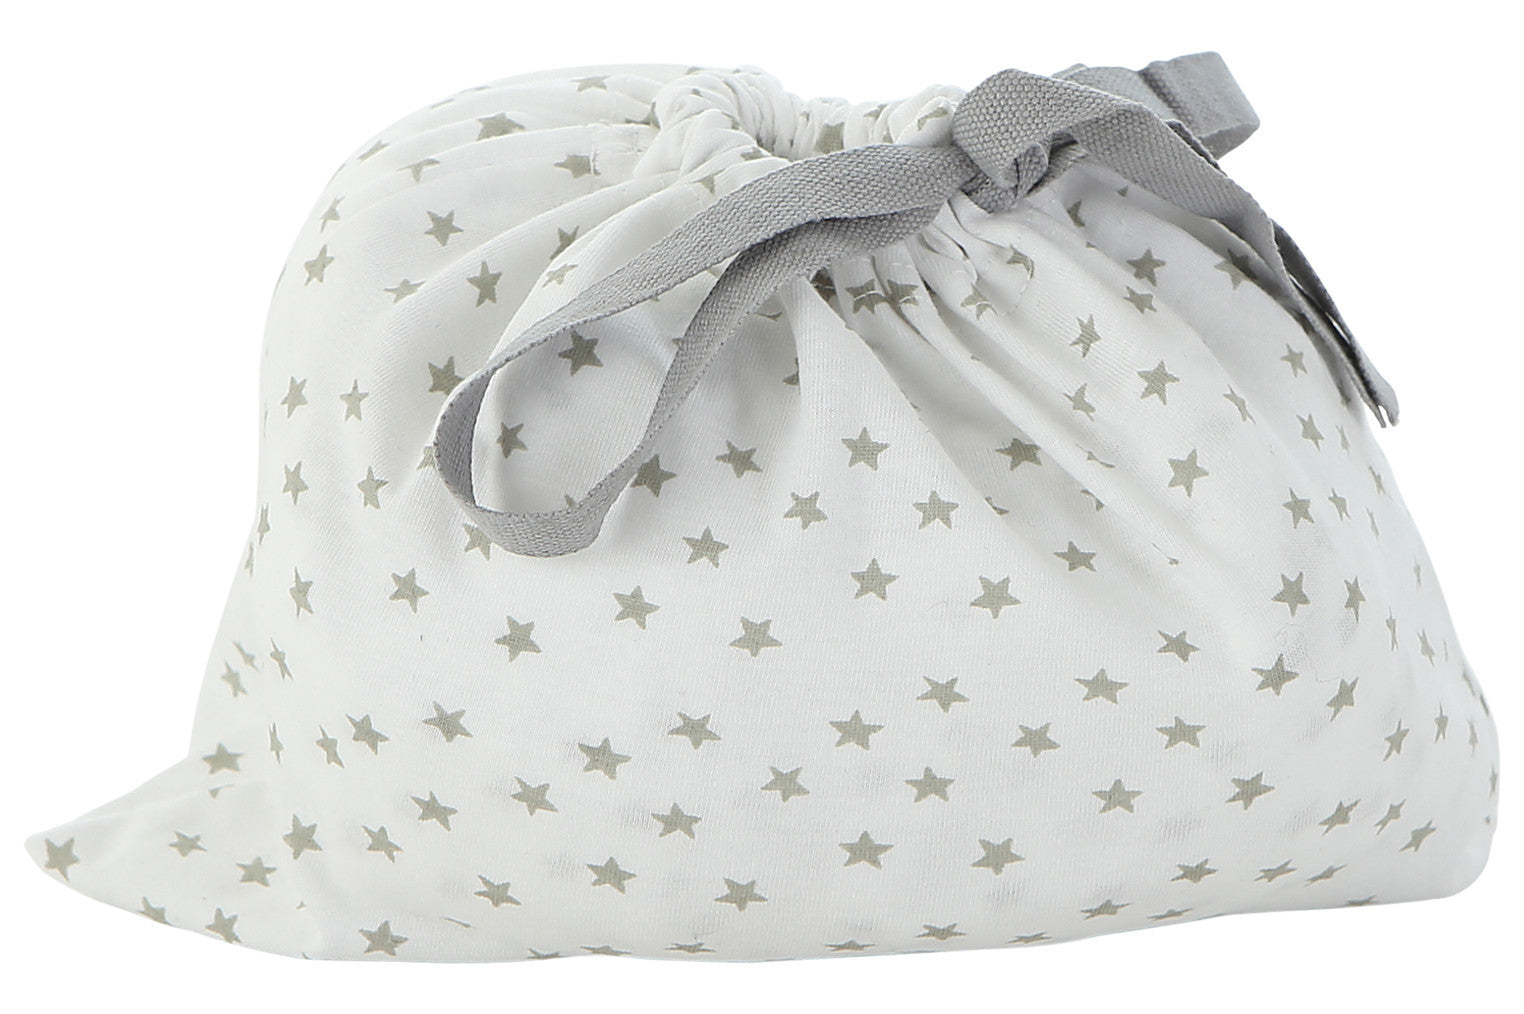 Grey star fitted crib sheet